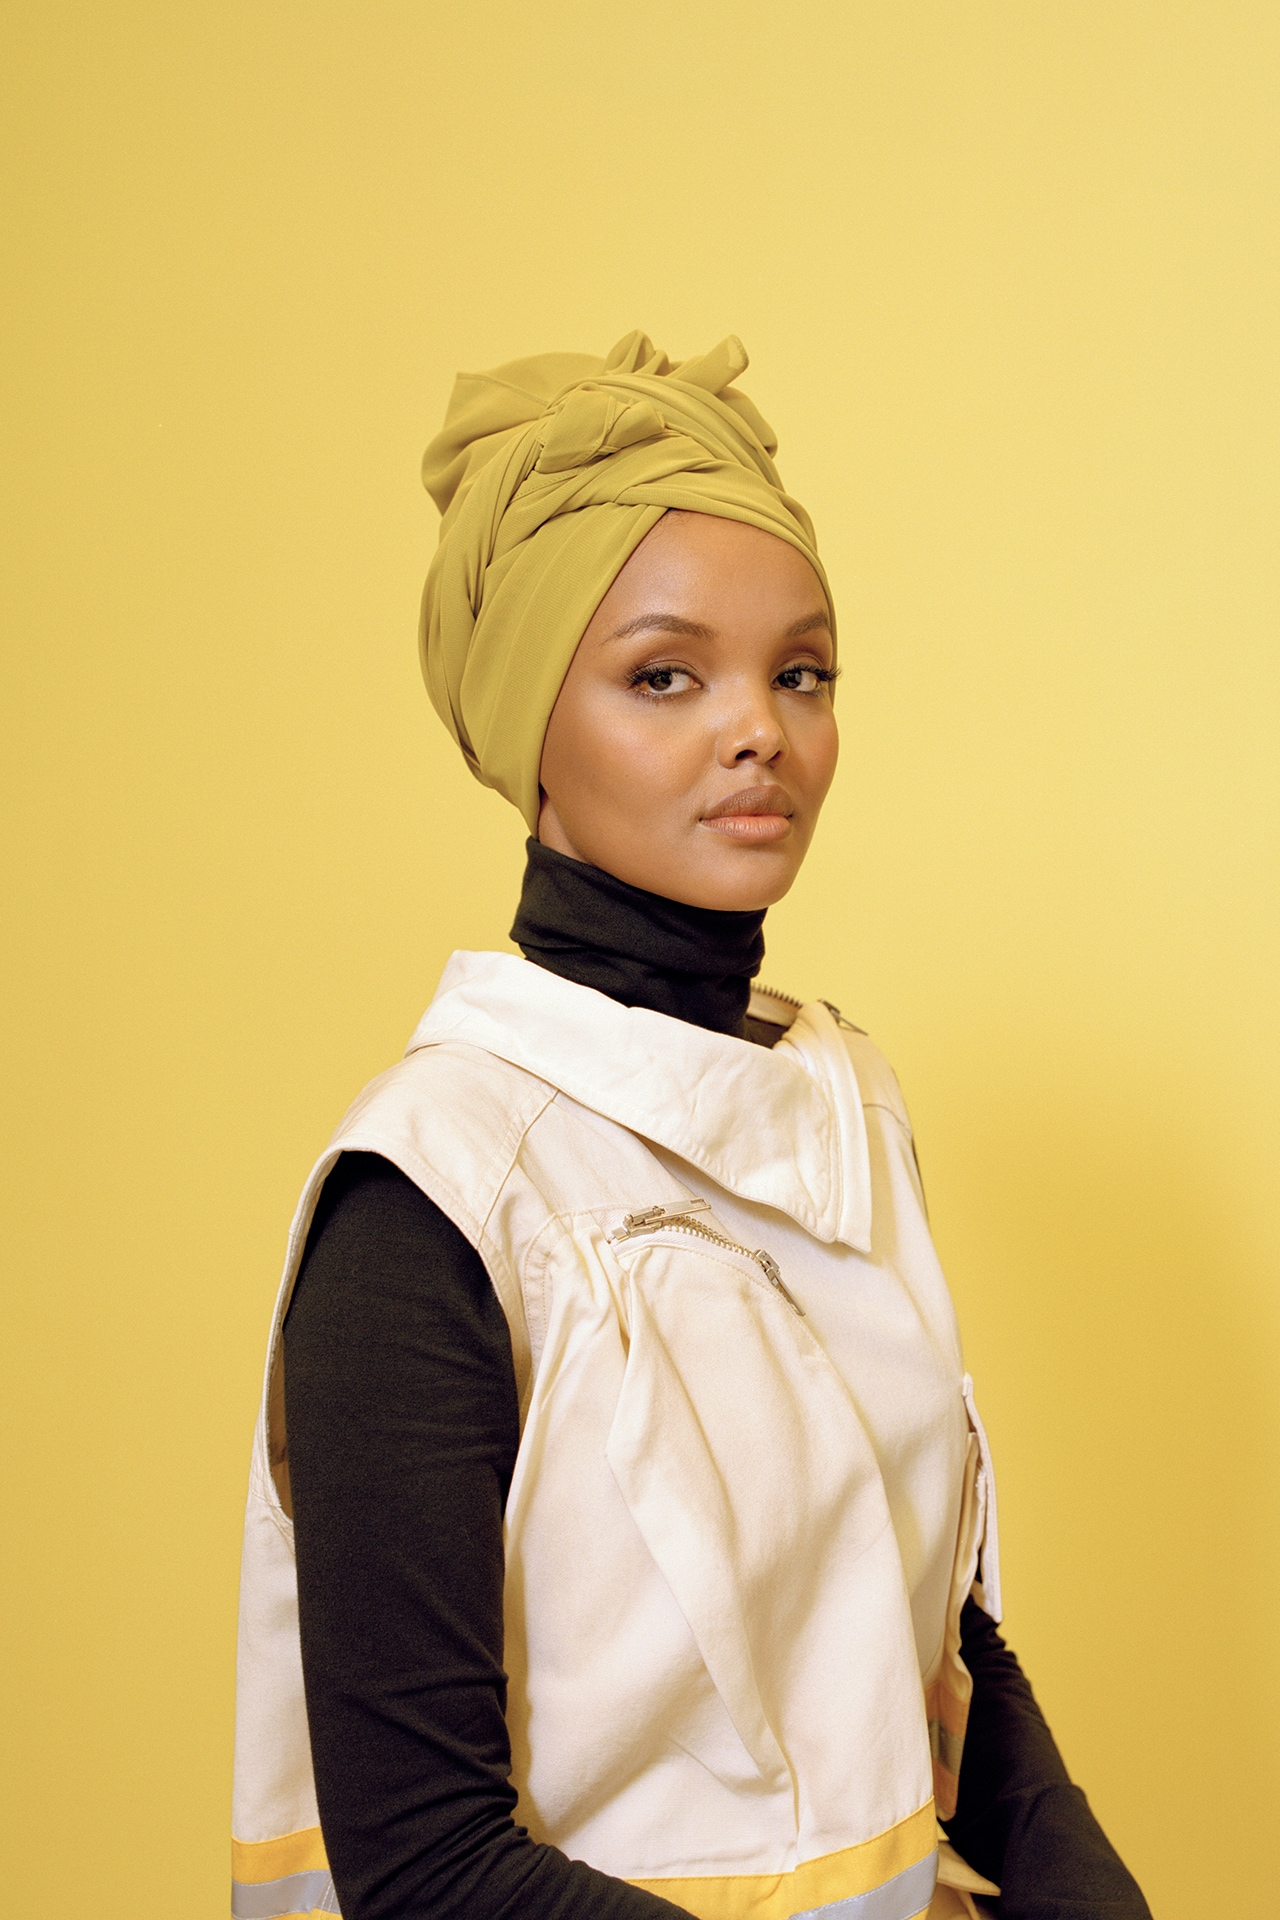 Behind the scenes at New York Fashion Week with Halima Aden